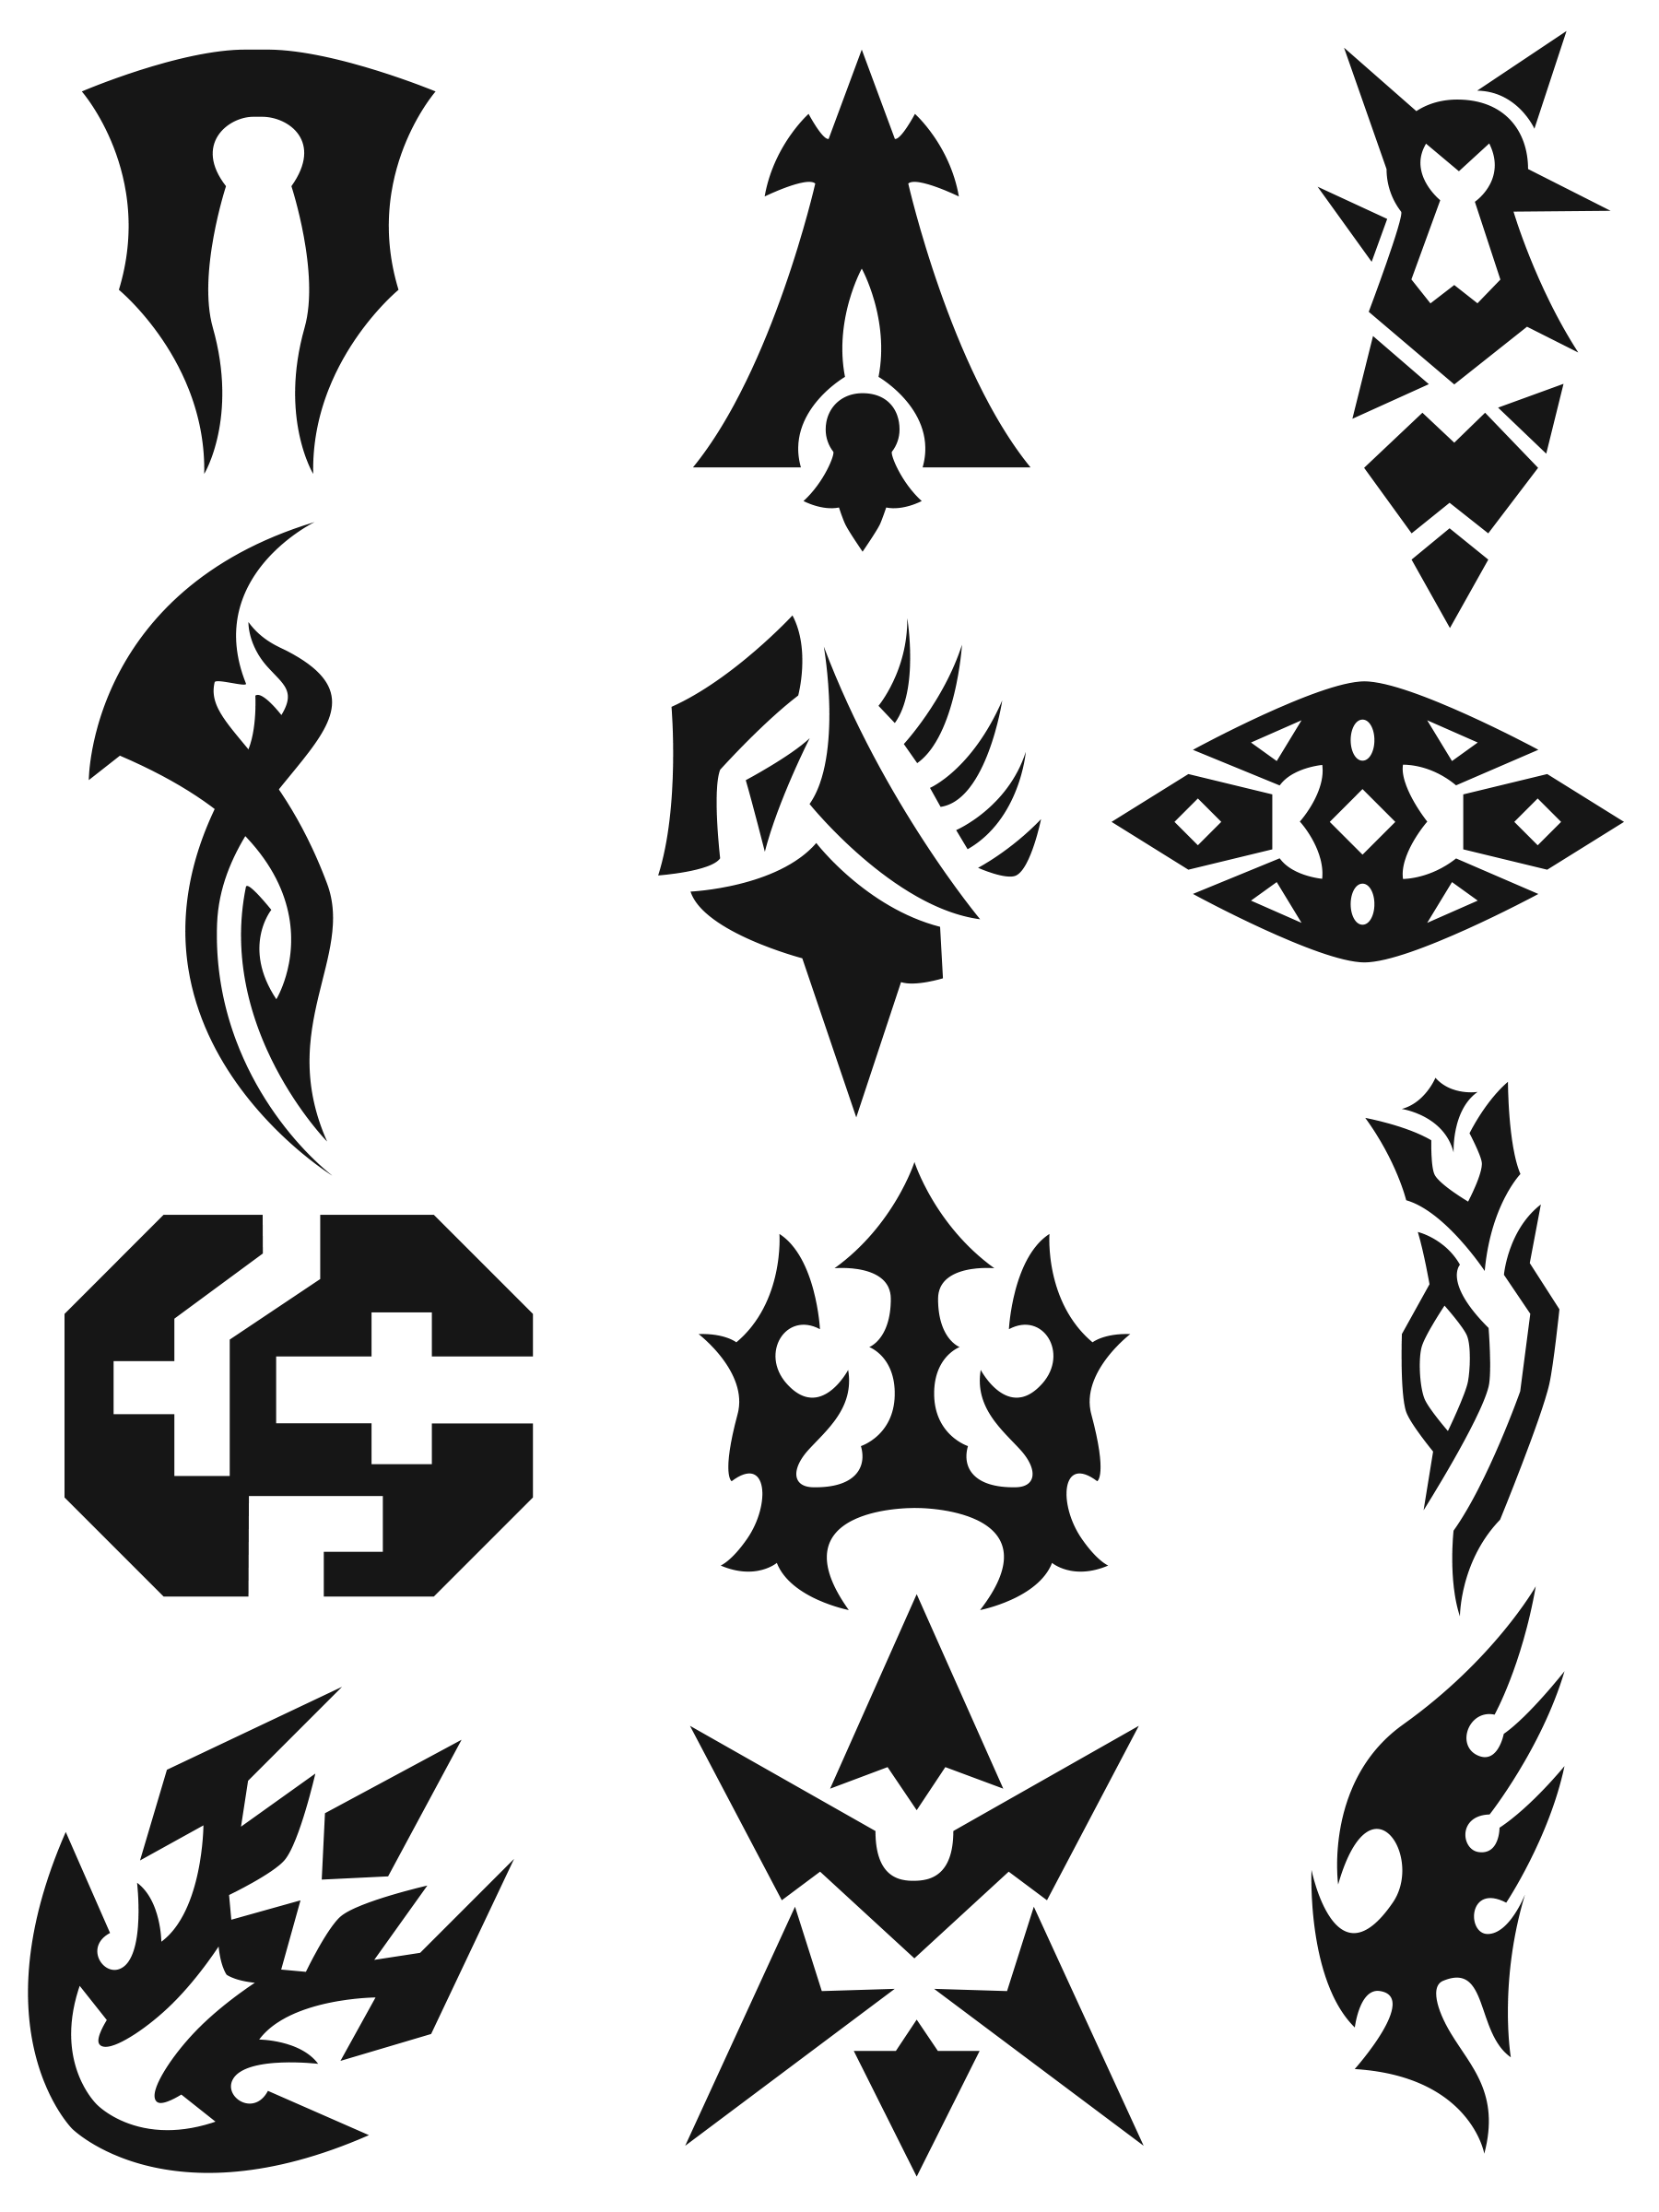 Chinese symbols by 01ashley10 on deviantart symbols 2 by feare909 biocorpaavc